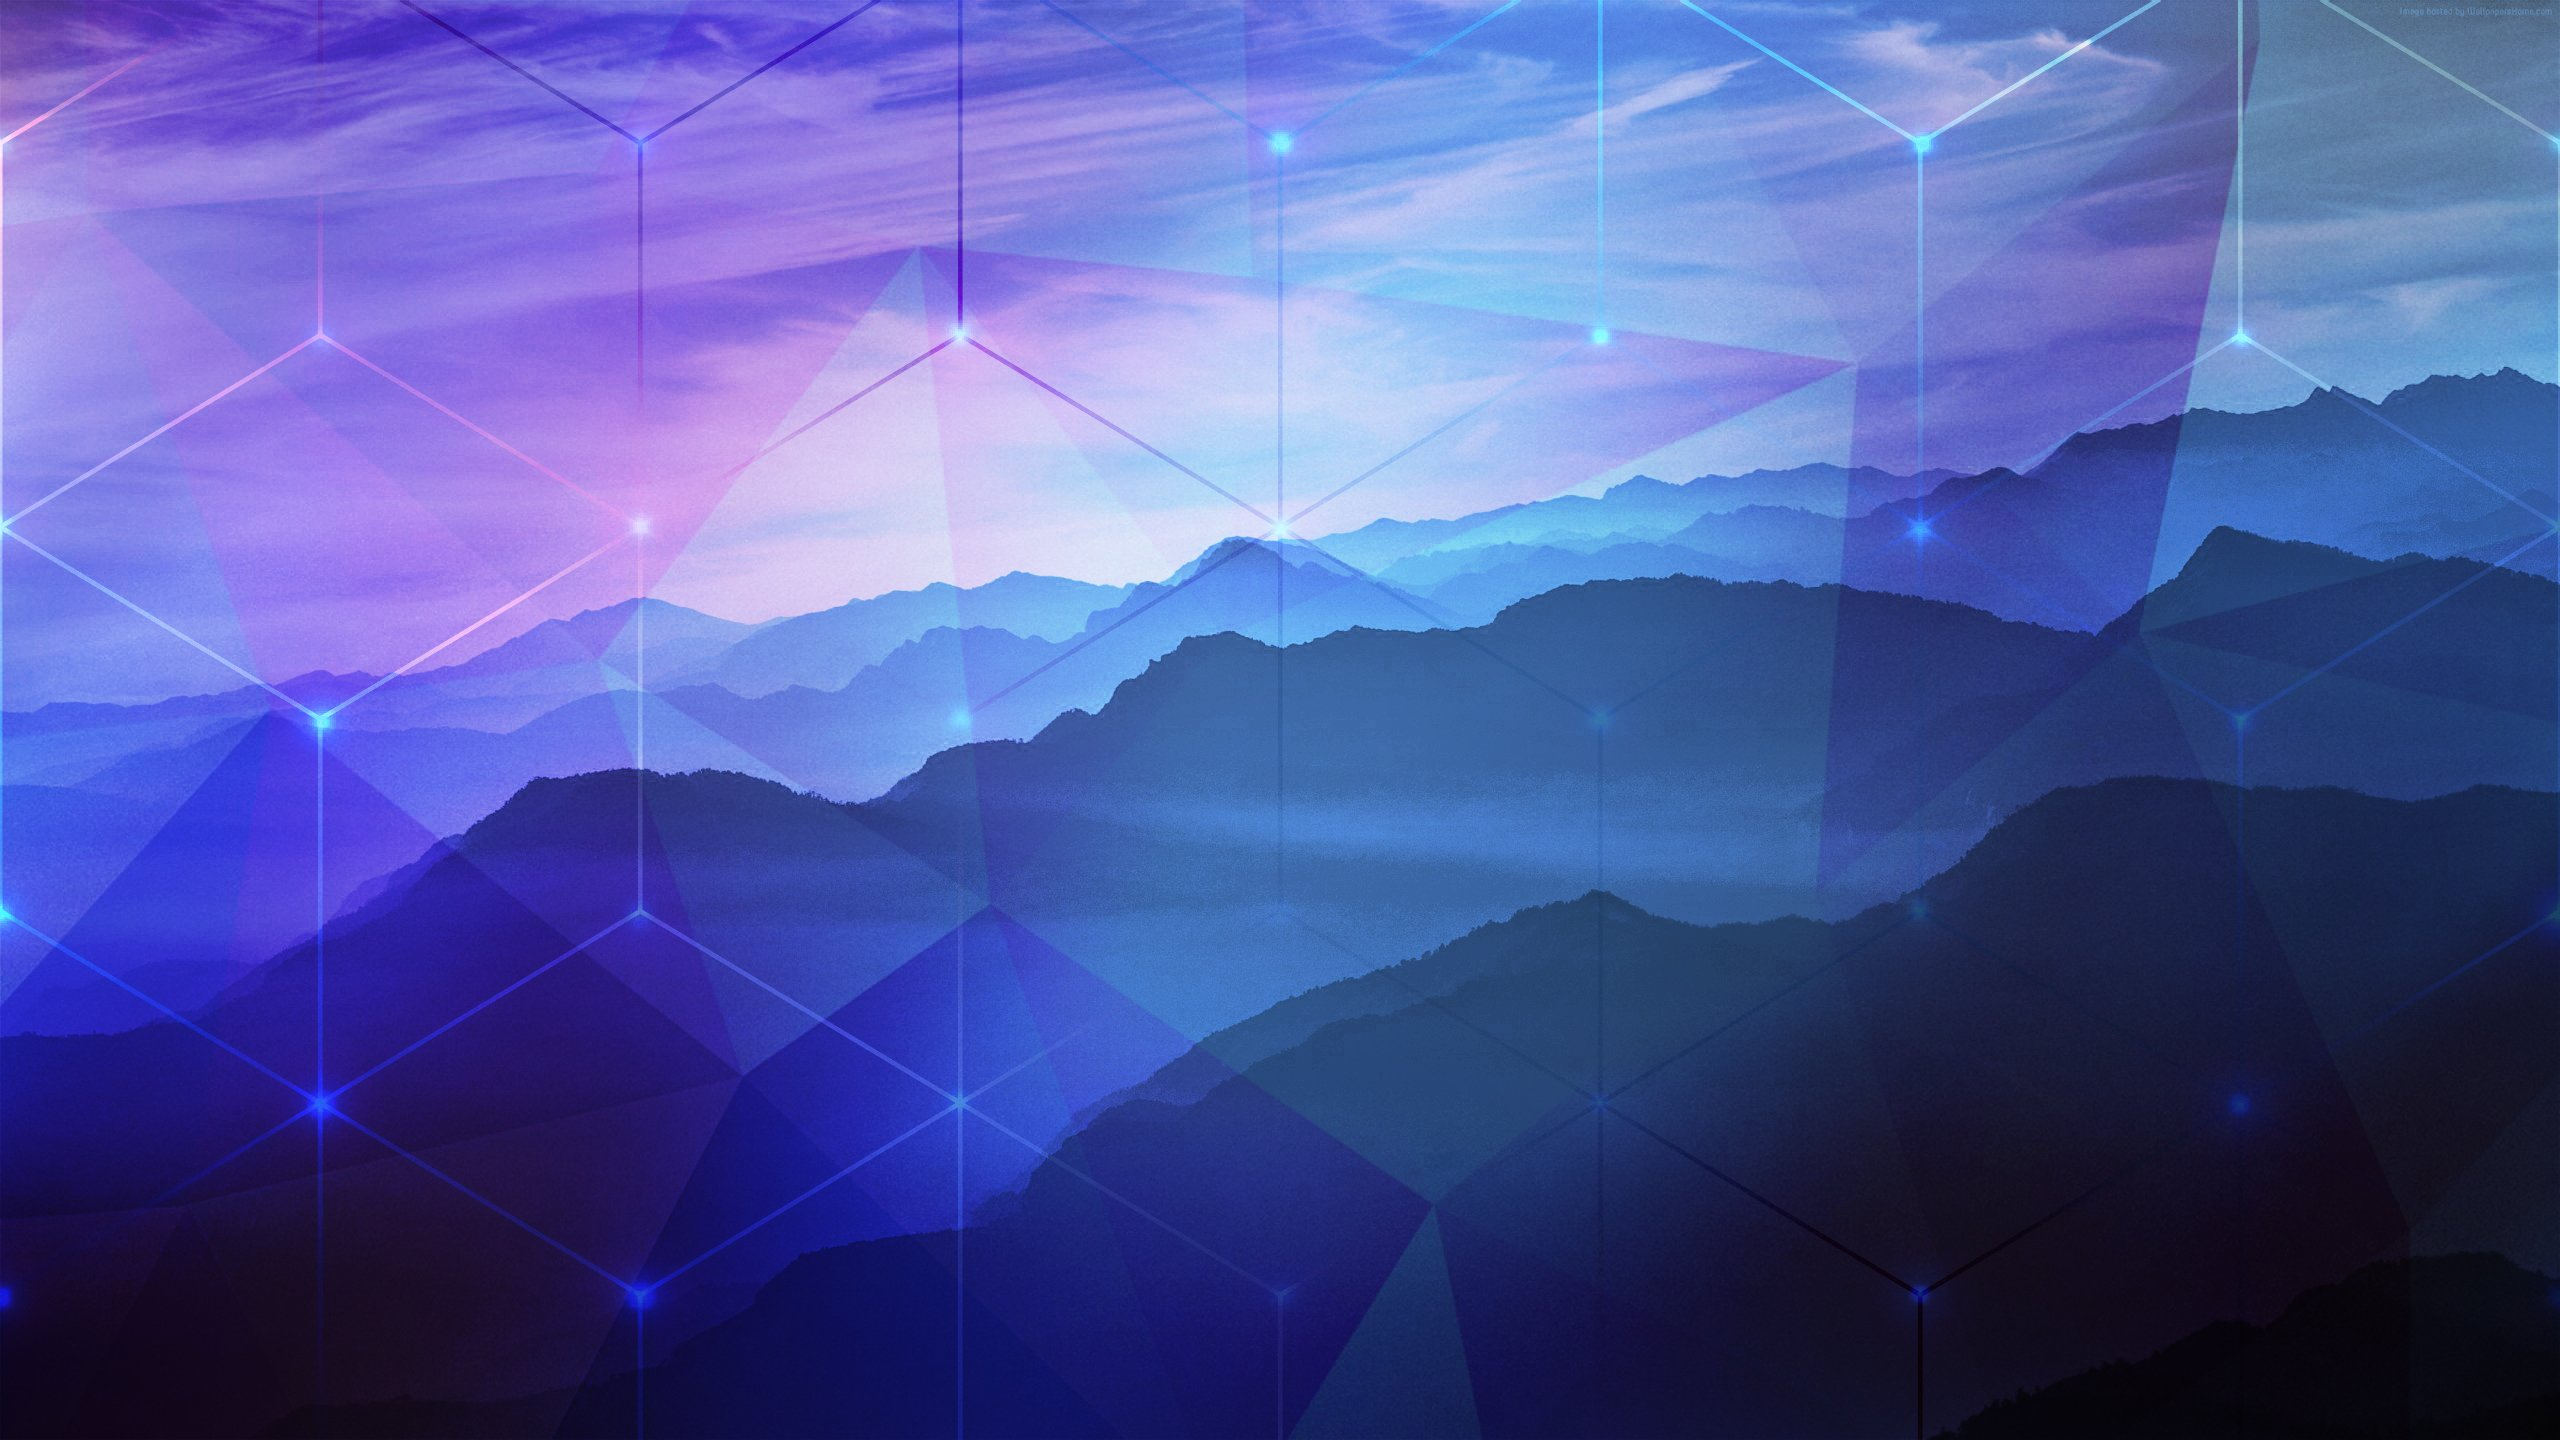 Cool Girls Overwatch Wallpapers Blue Purple Mountains Hexagon Photoshop 2k Peaceful